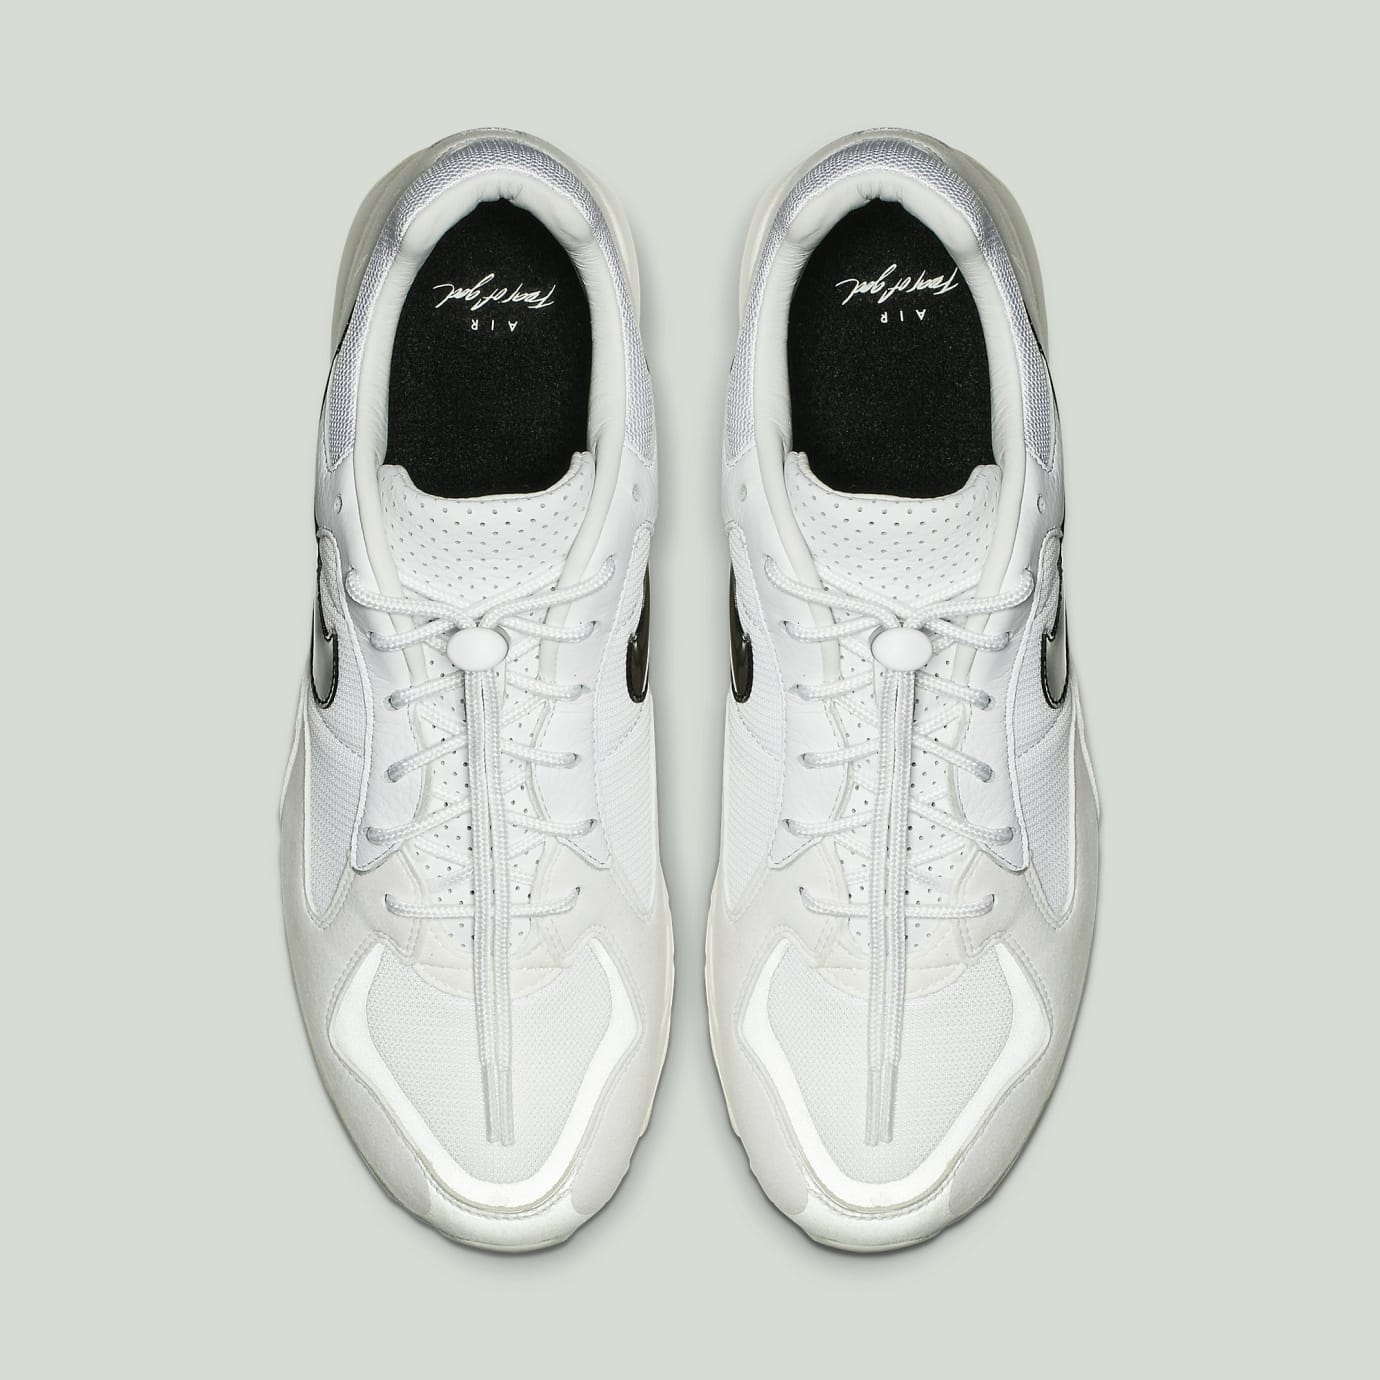 Fear of God x Nike Air Skylon 2 'White/Black-Light Bone-Sail' BQ2752-100 (Top)